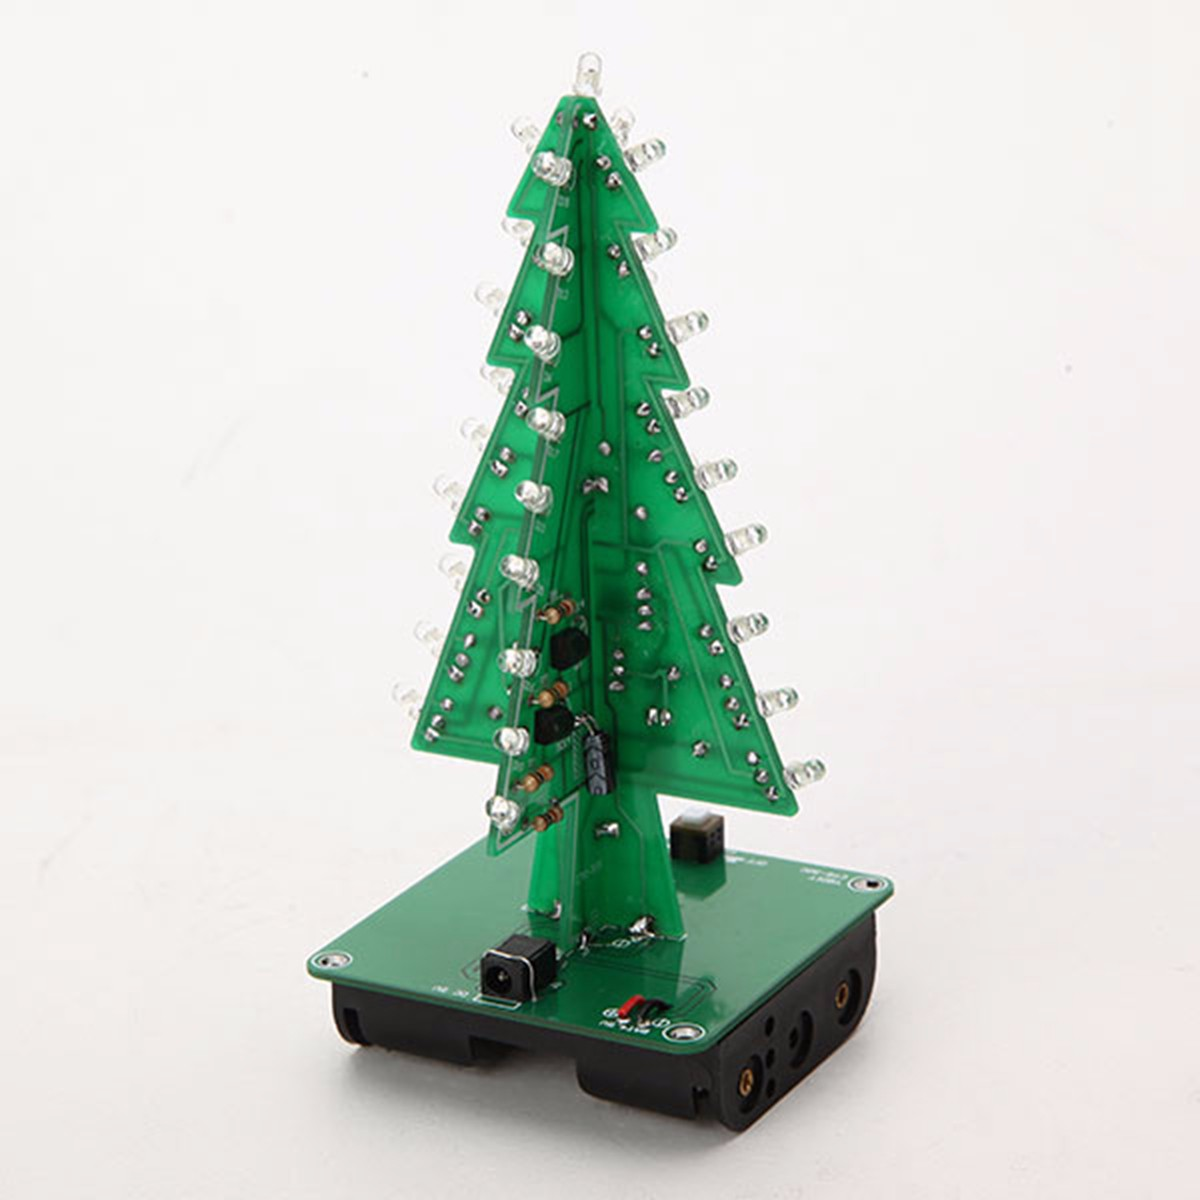 Geekcreit® Assembled Christmas Tree LED Flash Module 3D LED Flash Light Creative Device